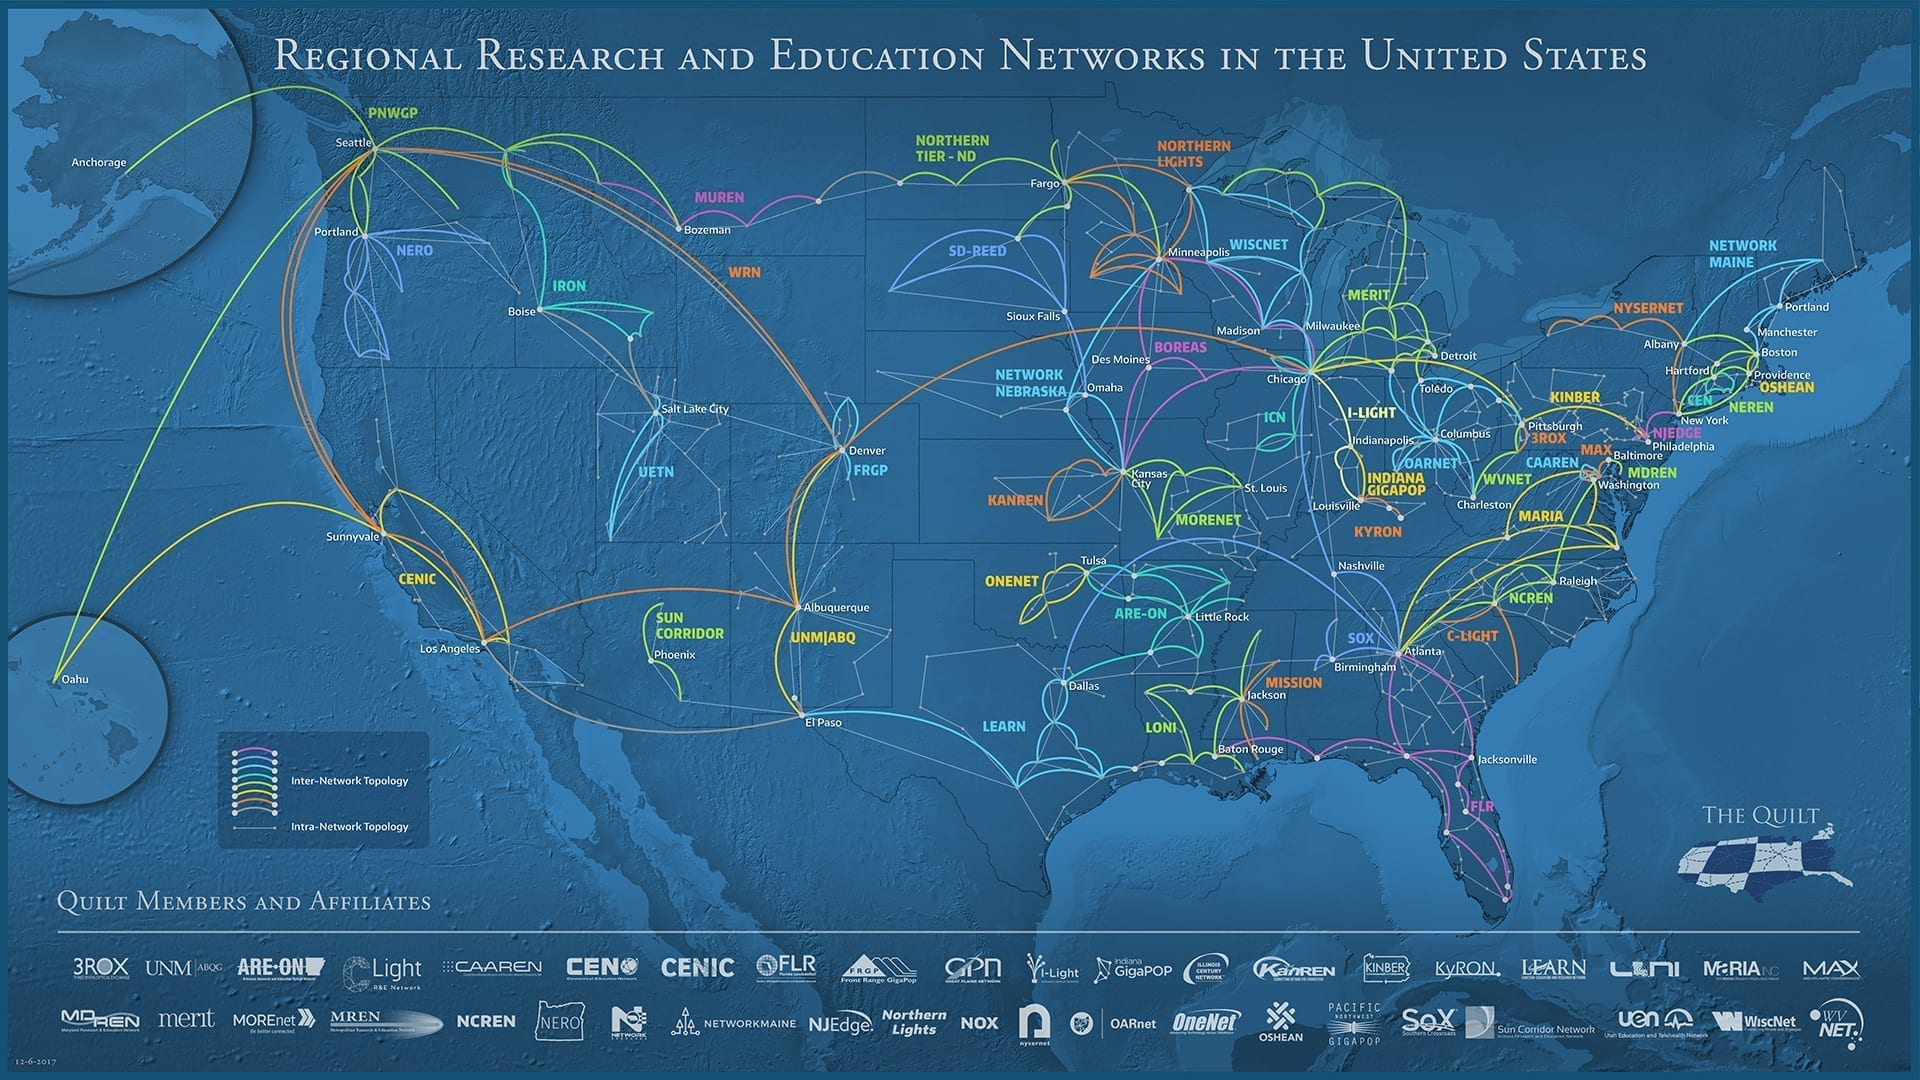 US Map of R&E Networks